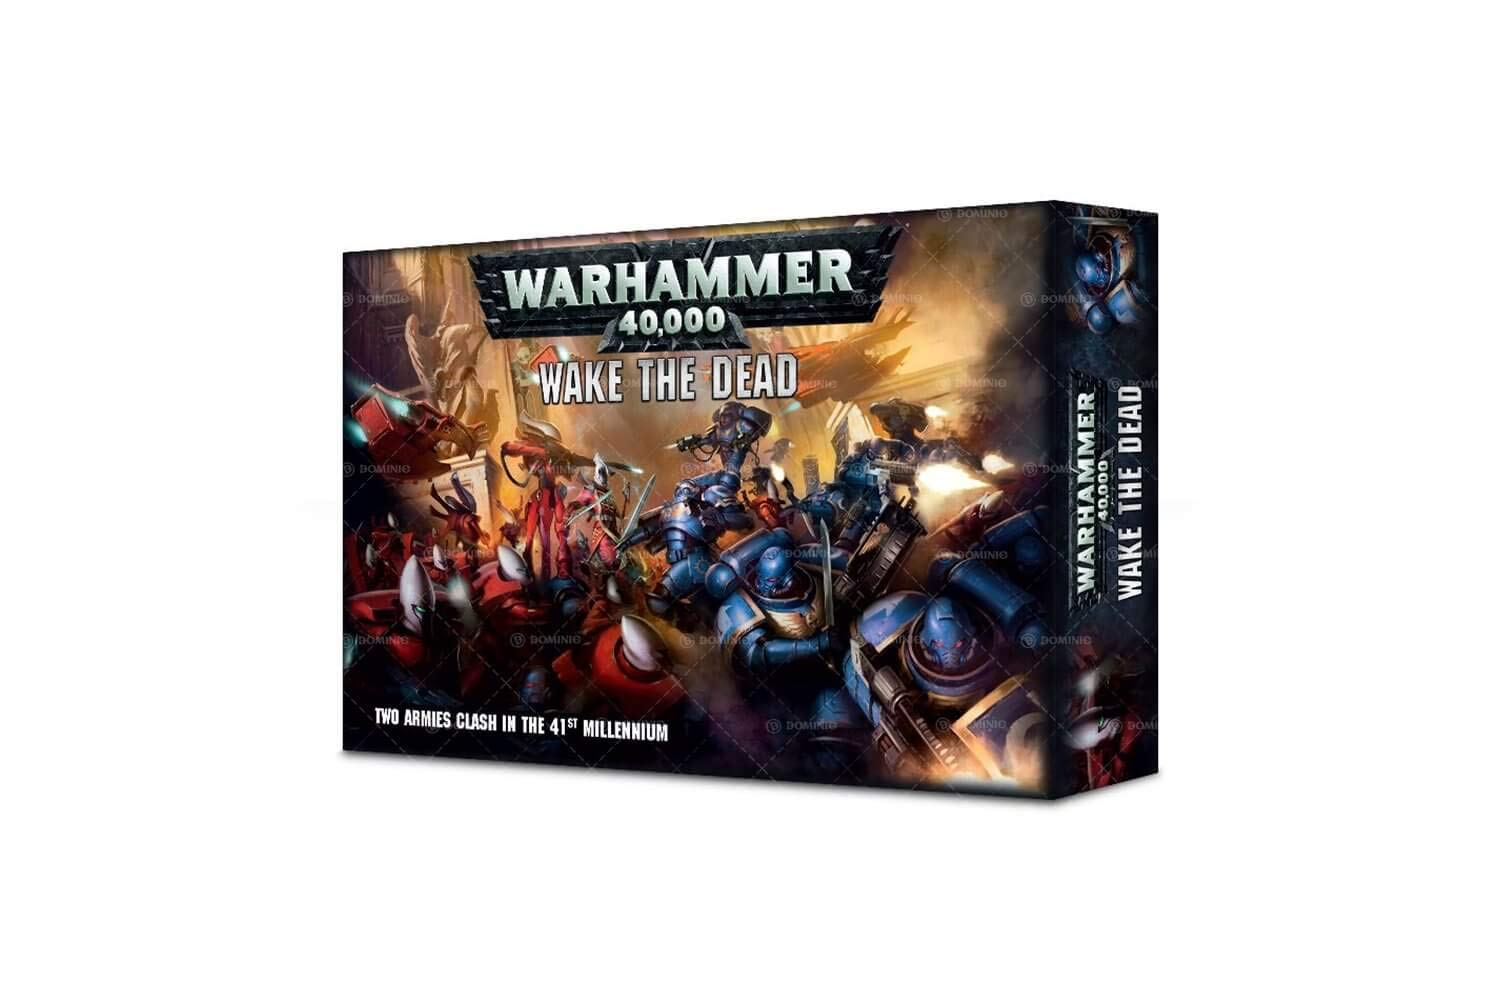 Warhammer 40,000: Wake The Dead by Games Workshop (Image #1)